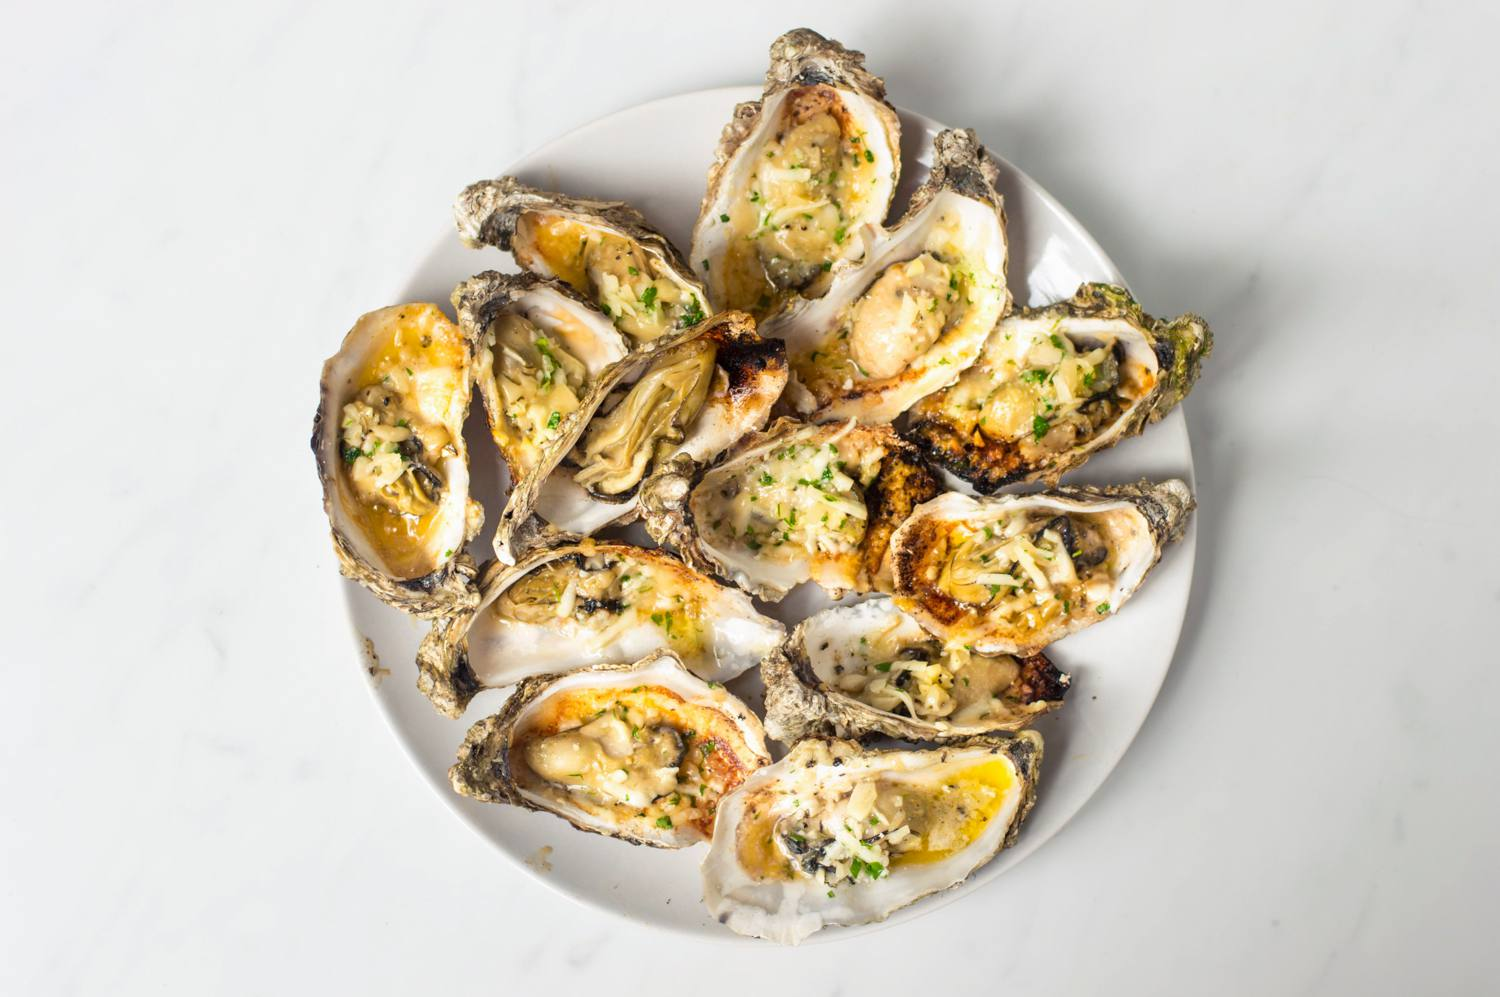 Drago's charbroiled oysters served in the shells